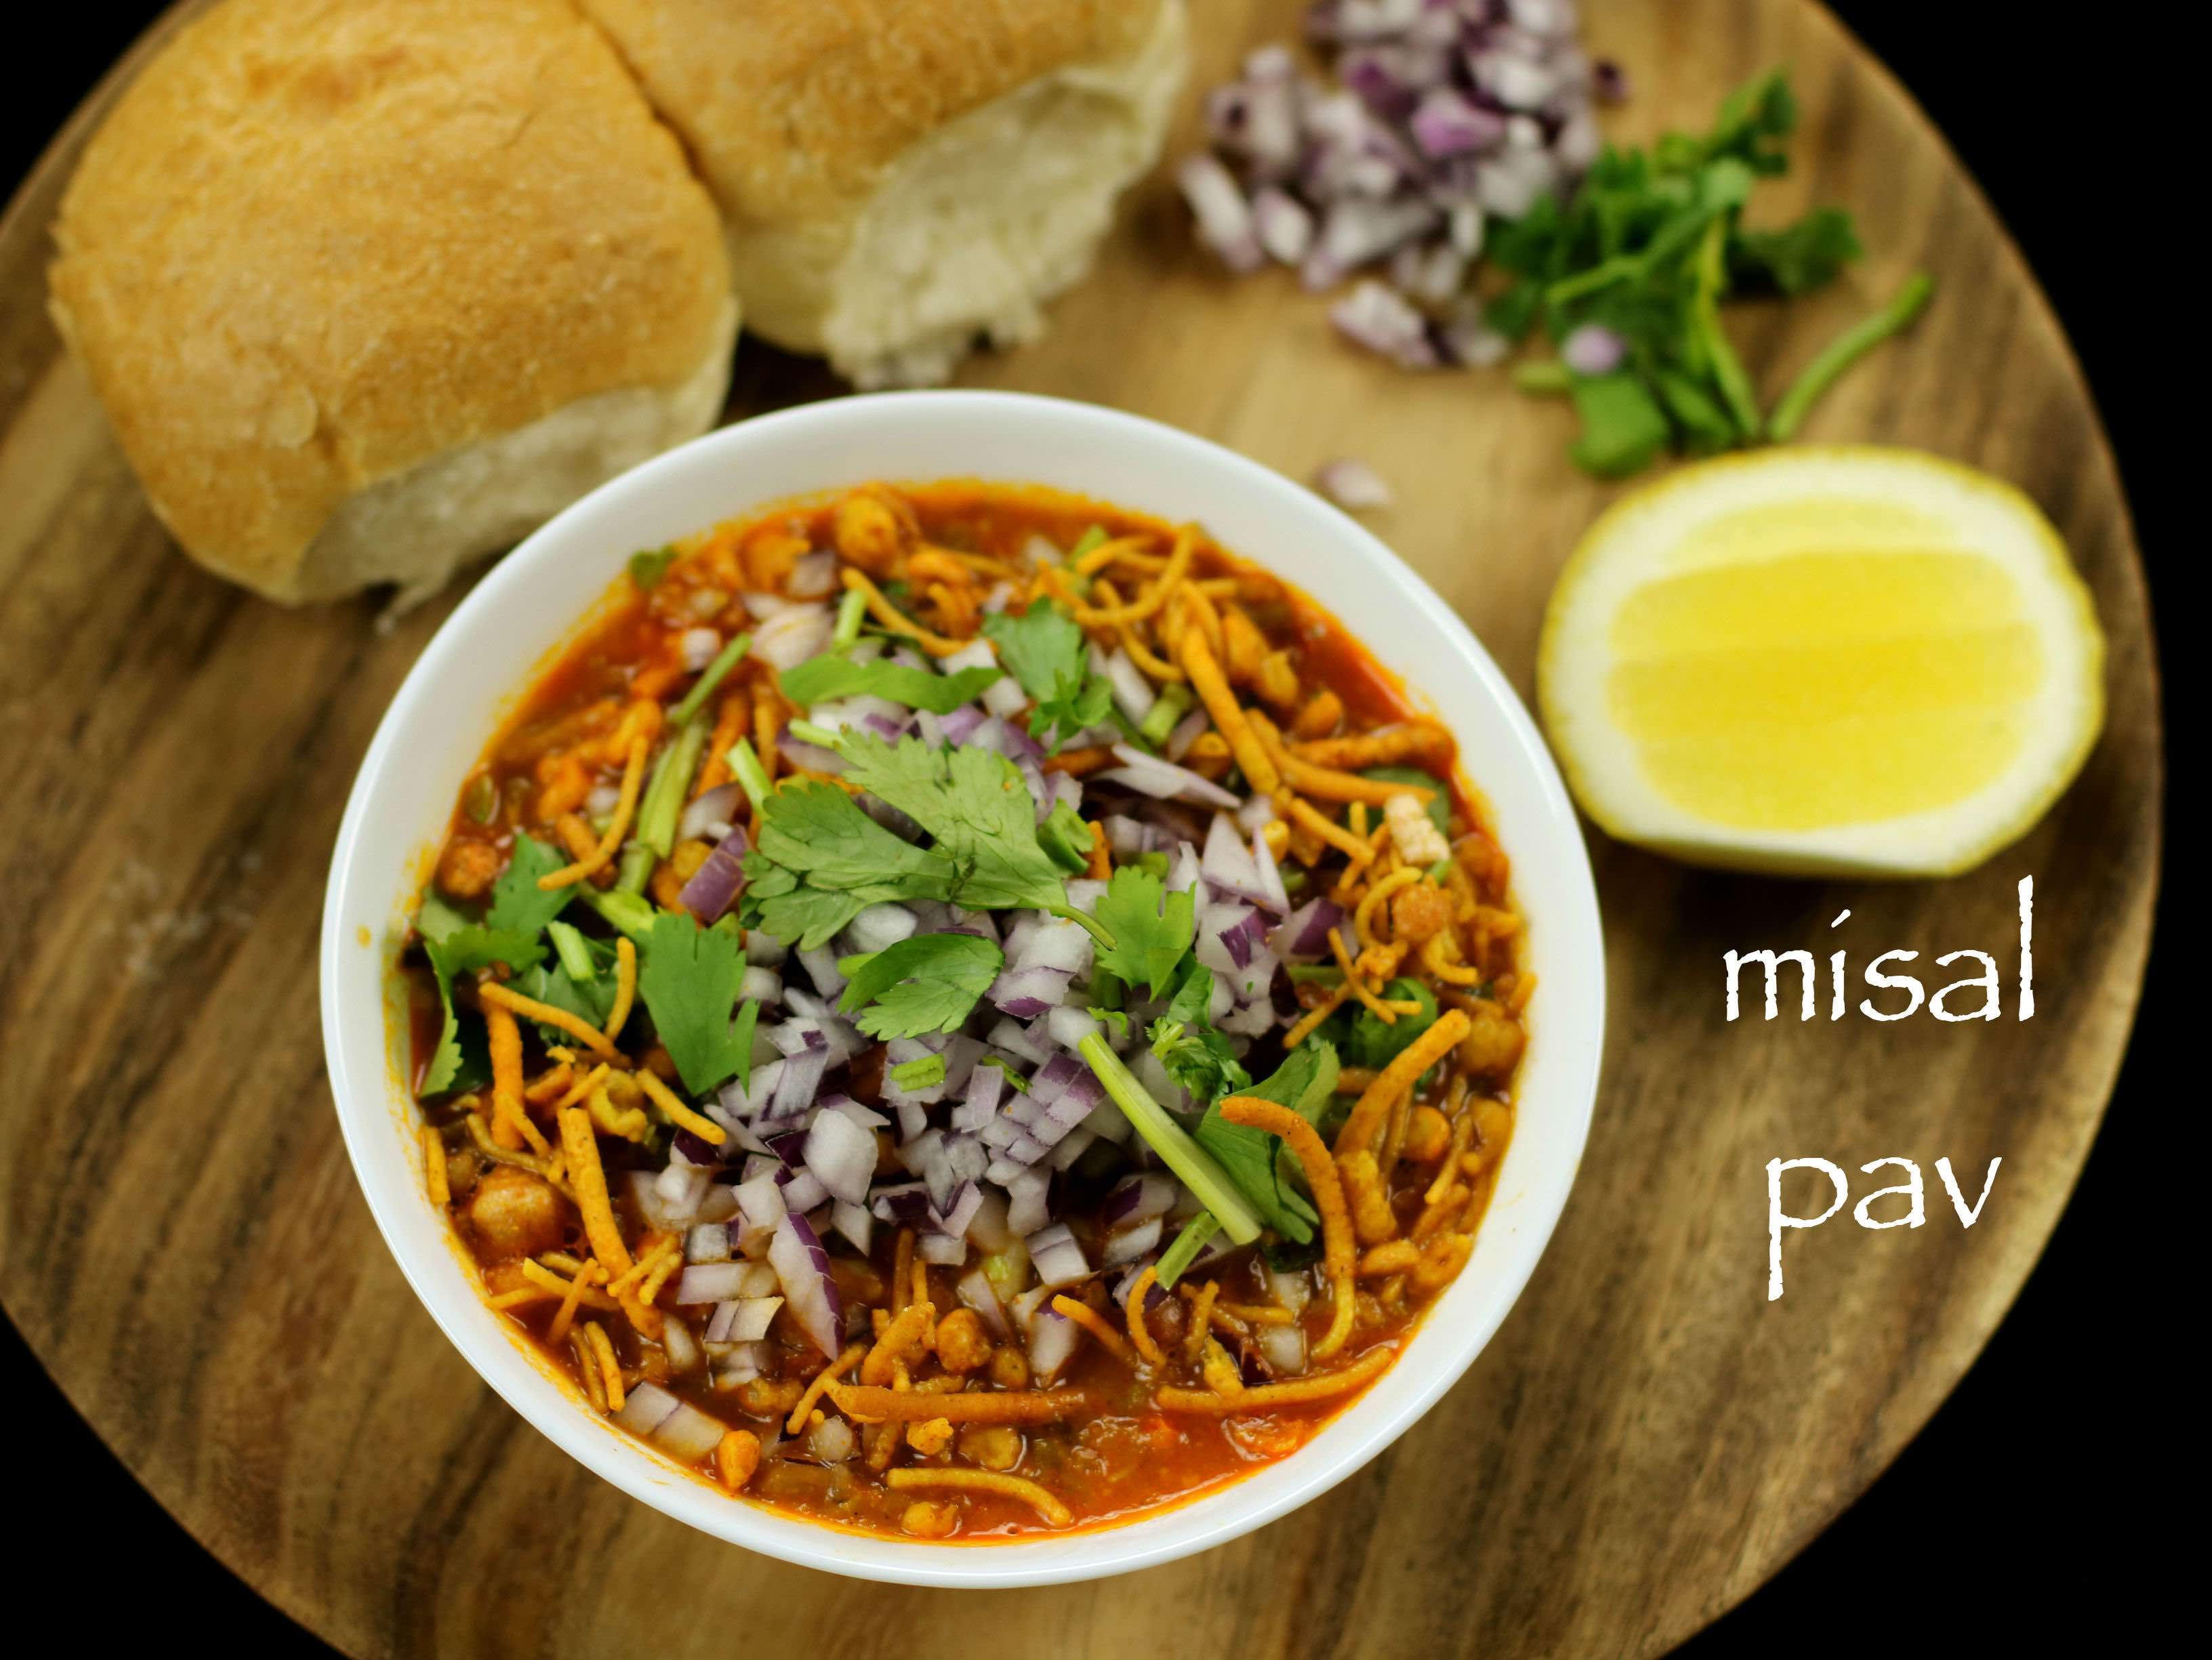 Misal pav recipe | how to make maharashtrian misal pav ...